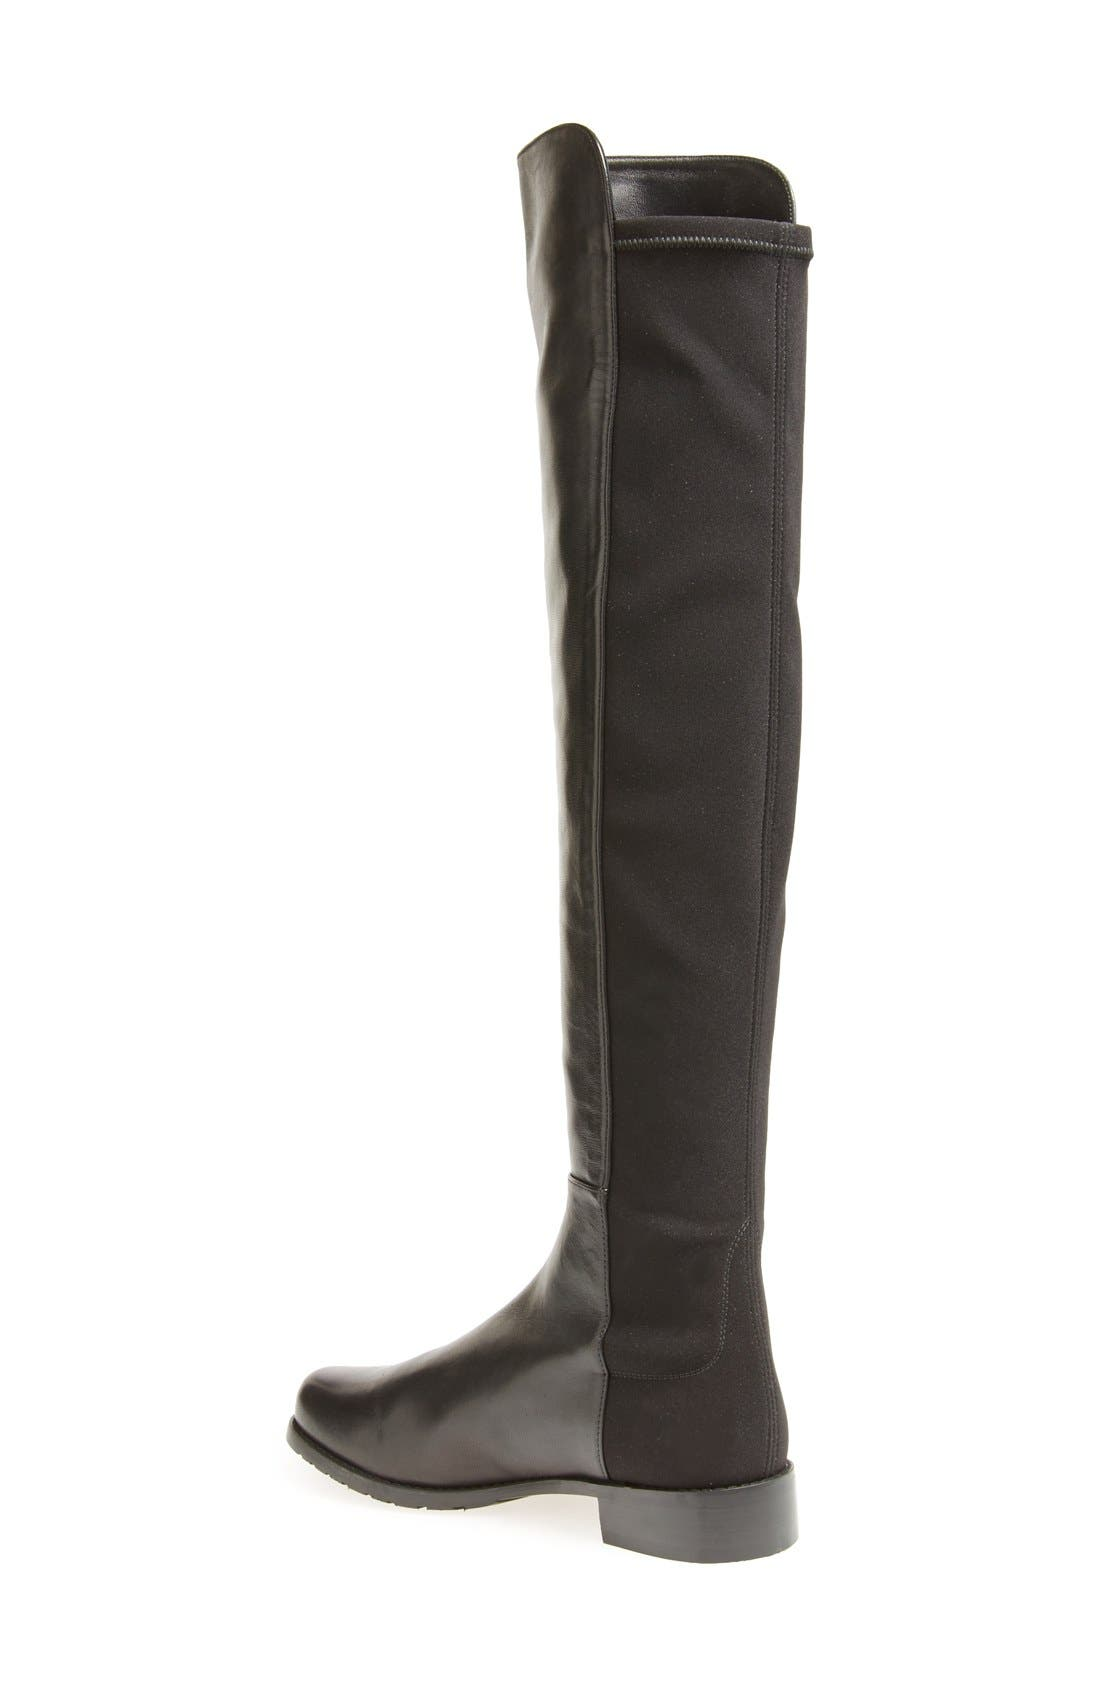 65da6b6bdcb Over-the-Knee Boots for Women